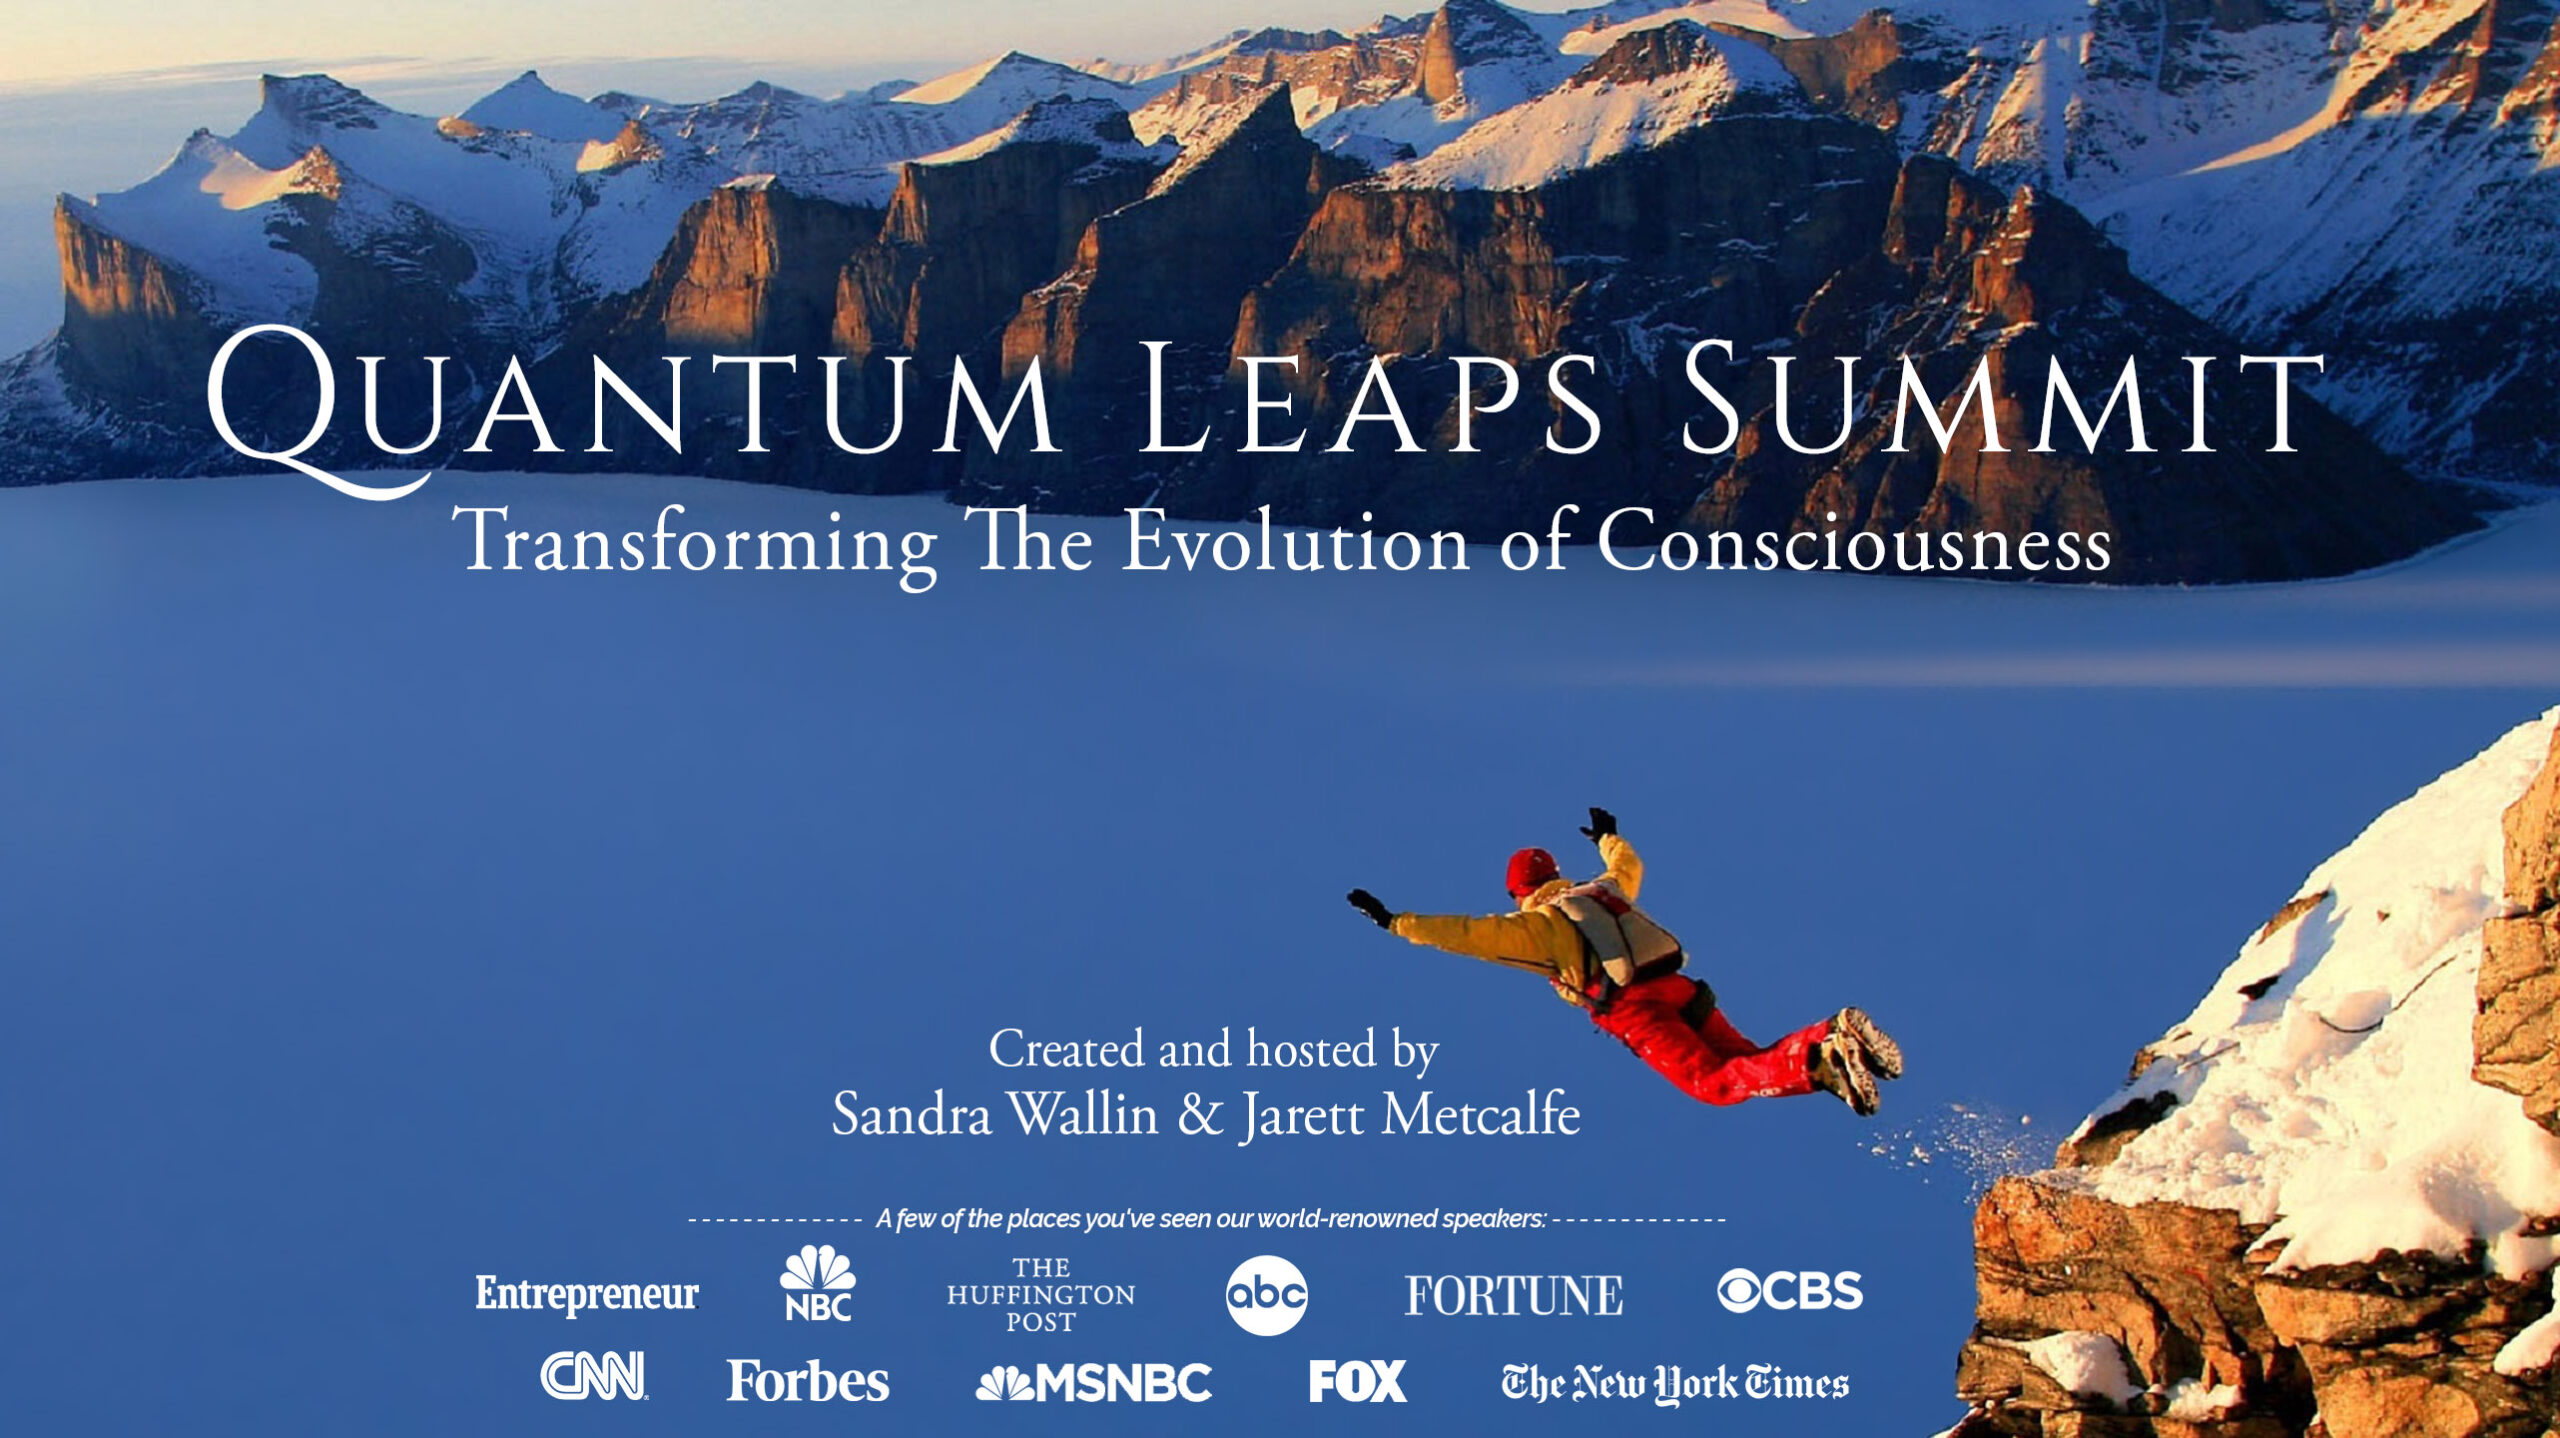 Post Summit Website Cover Image